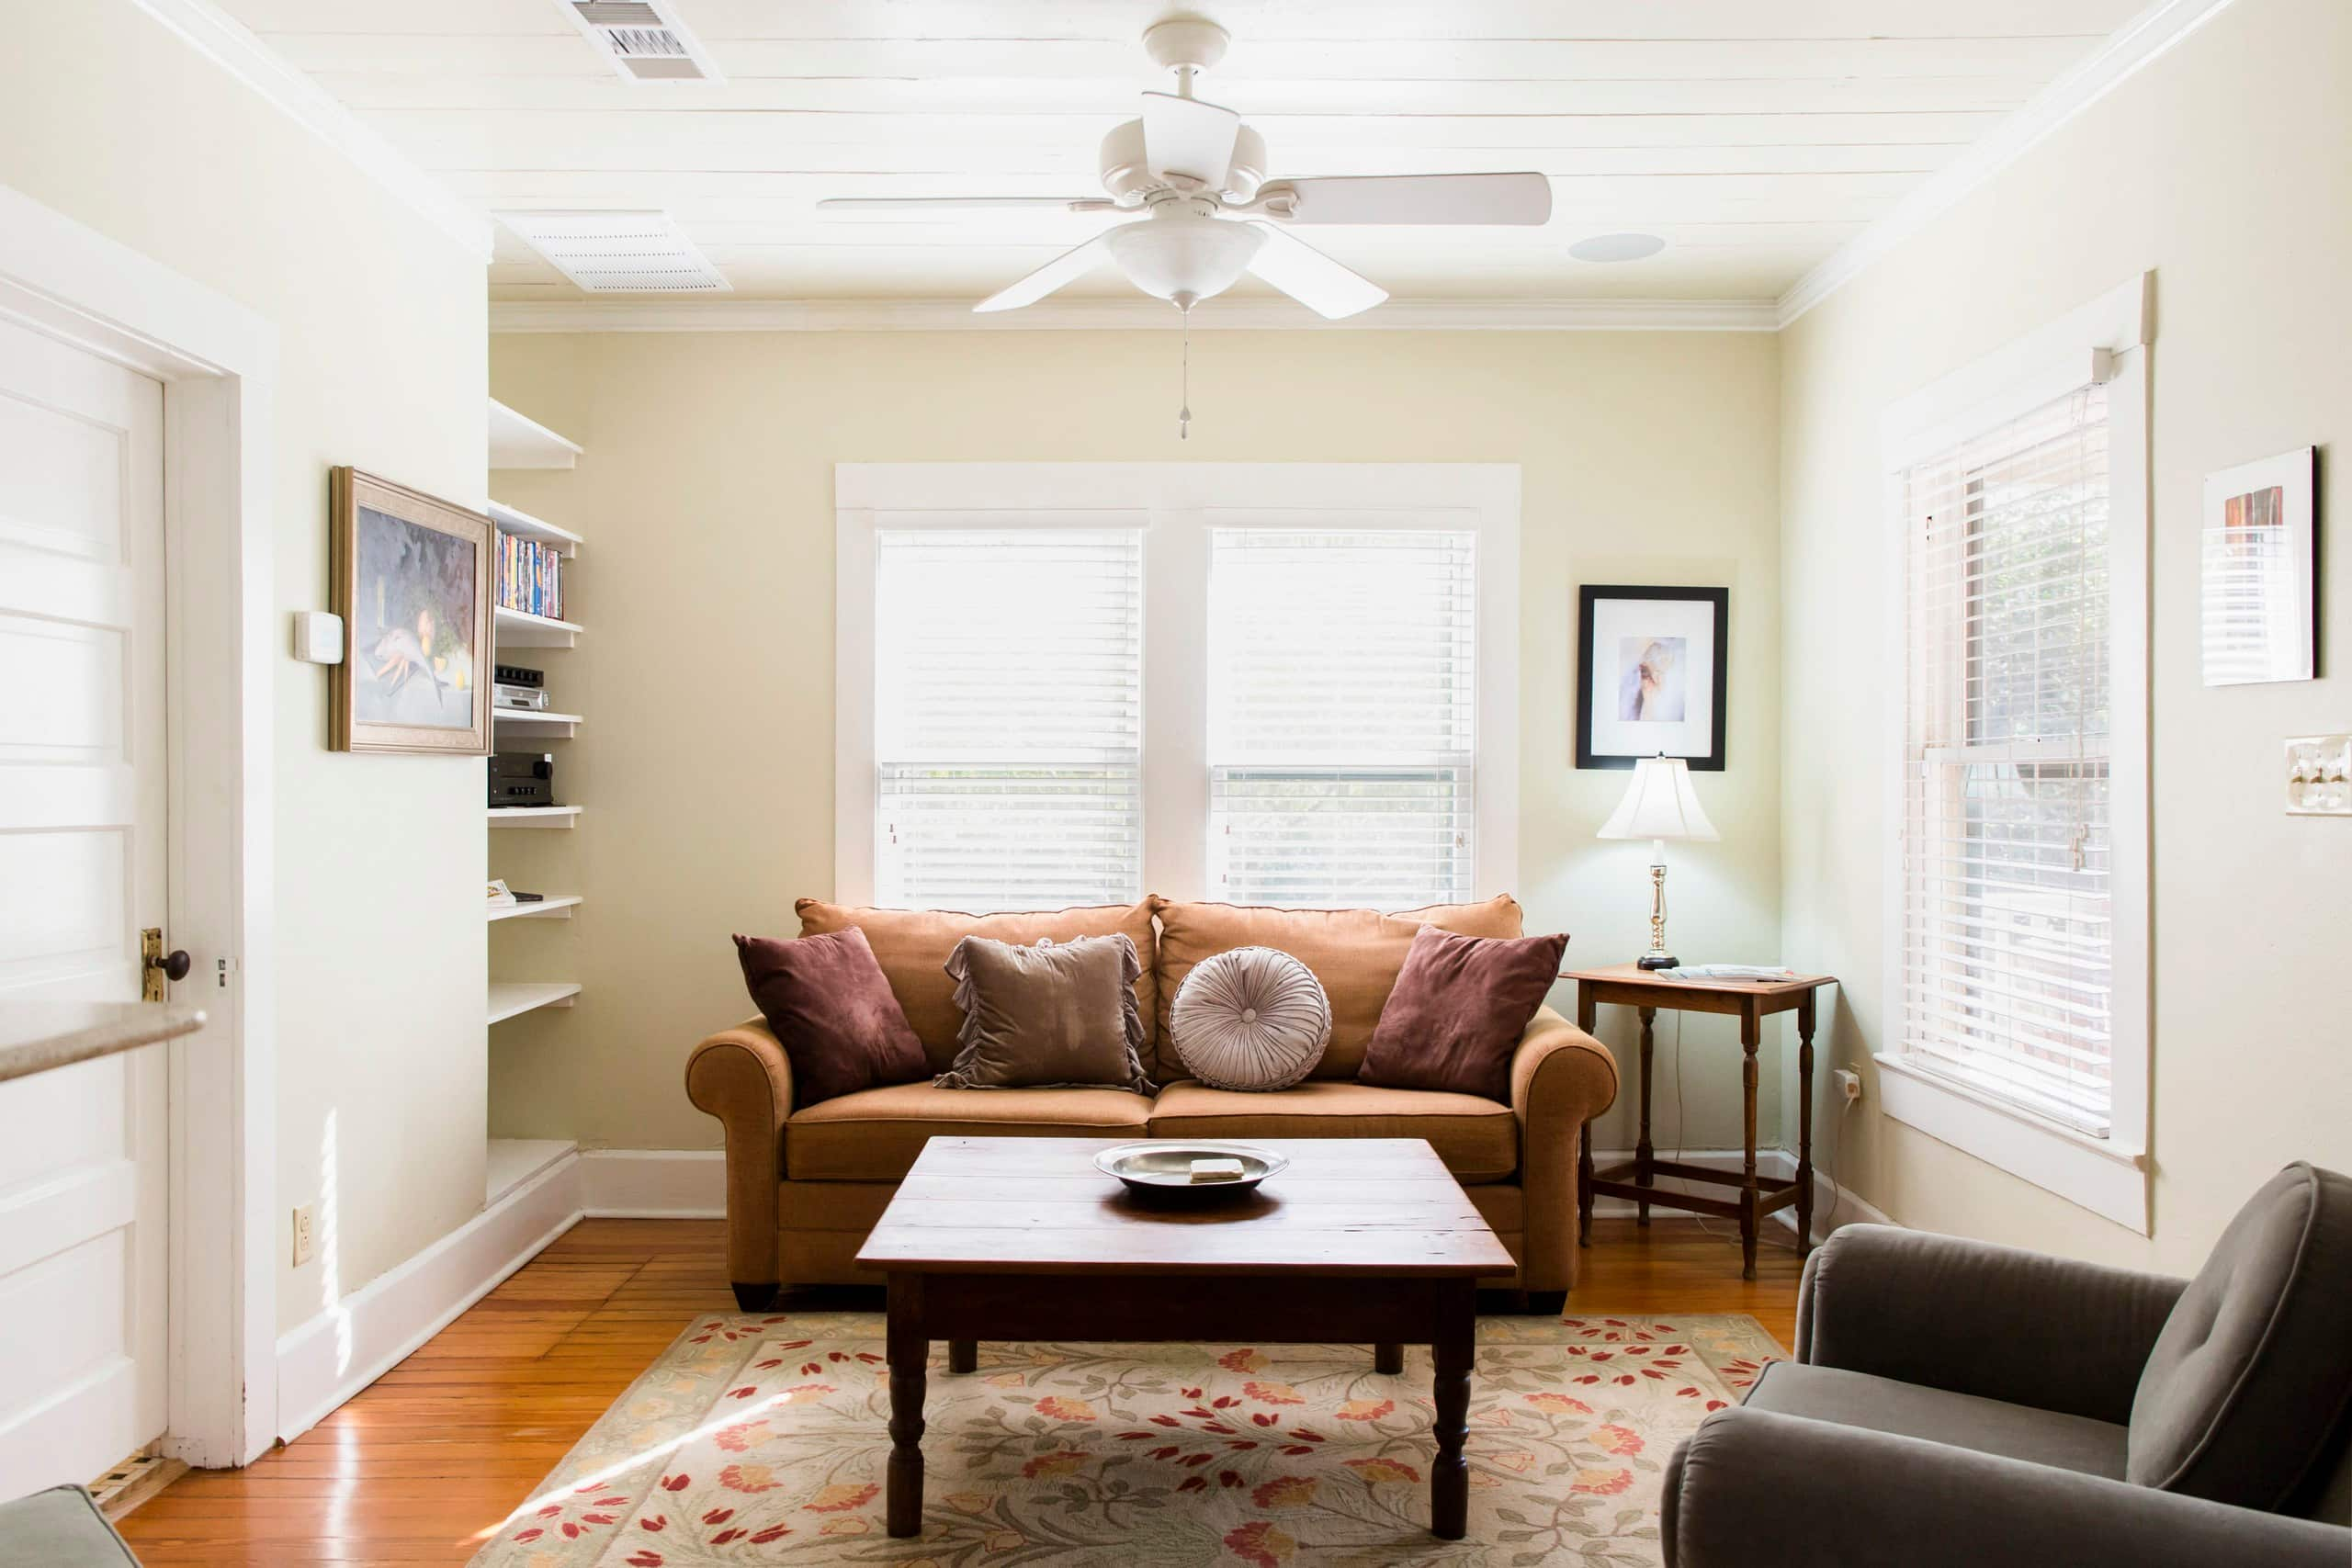 Charming Guesthouse on Urban Farm - Farm stays for Rent in Austin ...